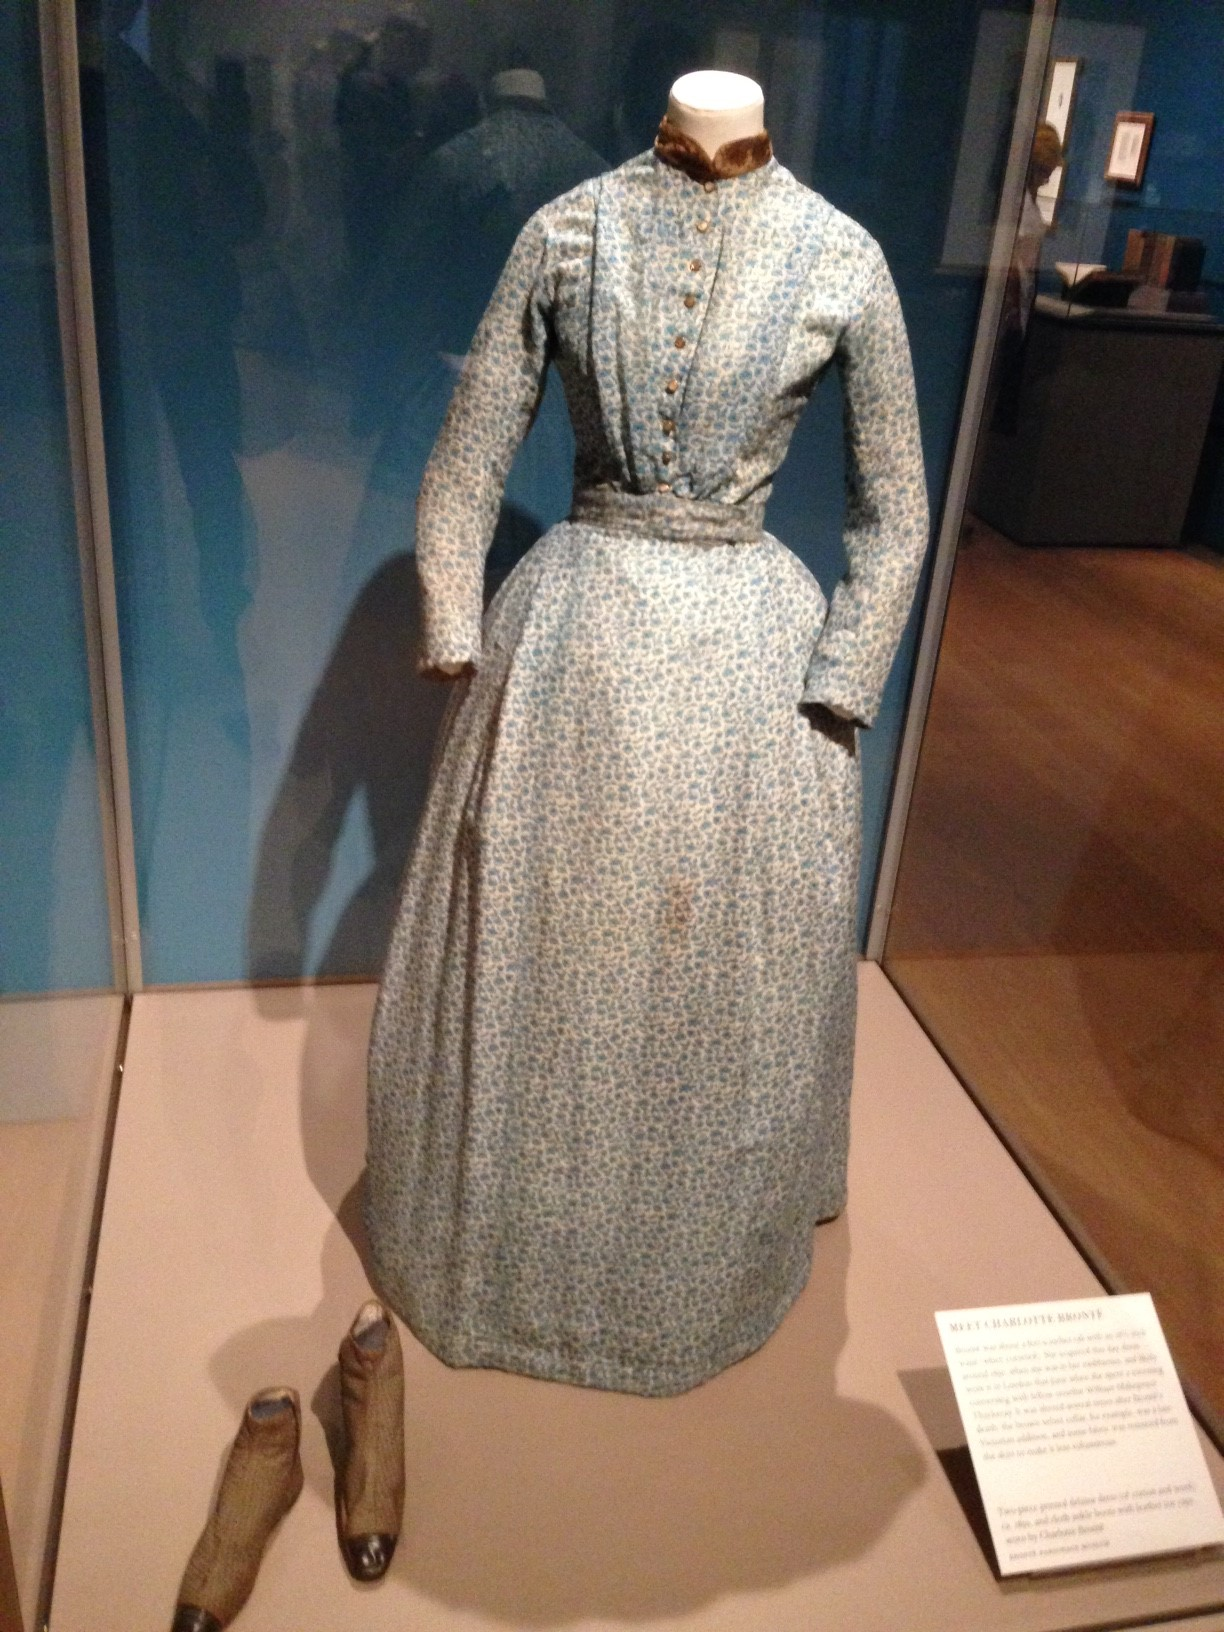 Charlotte Bronte's dress and shoes